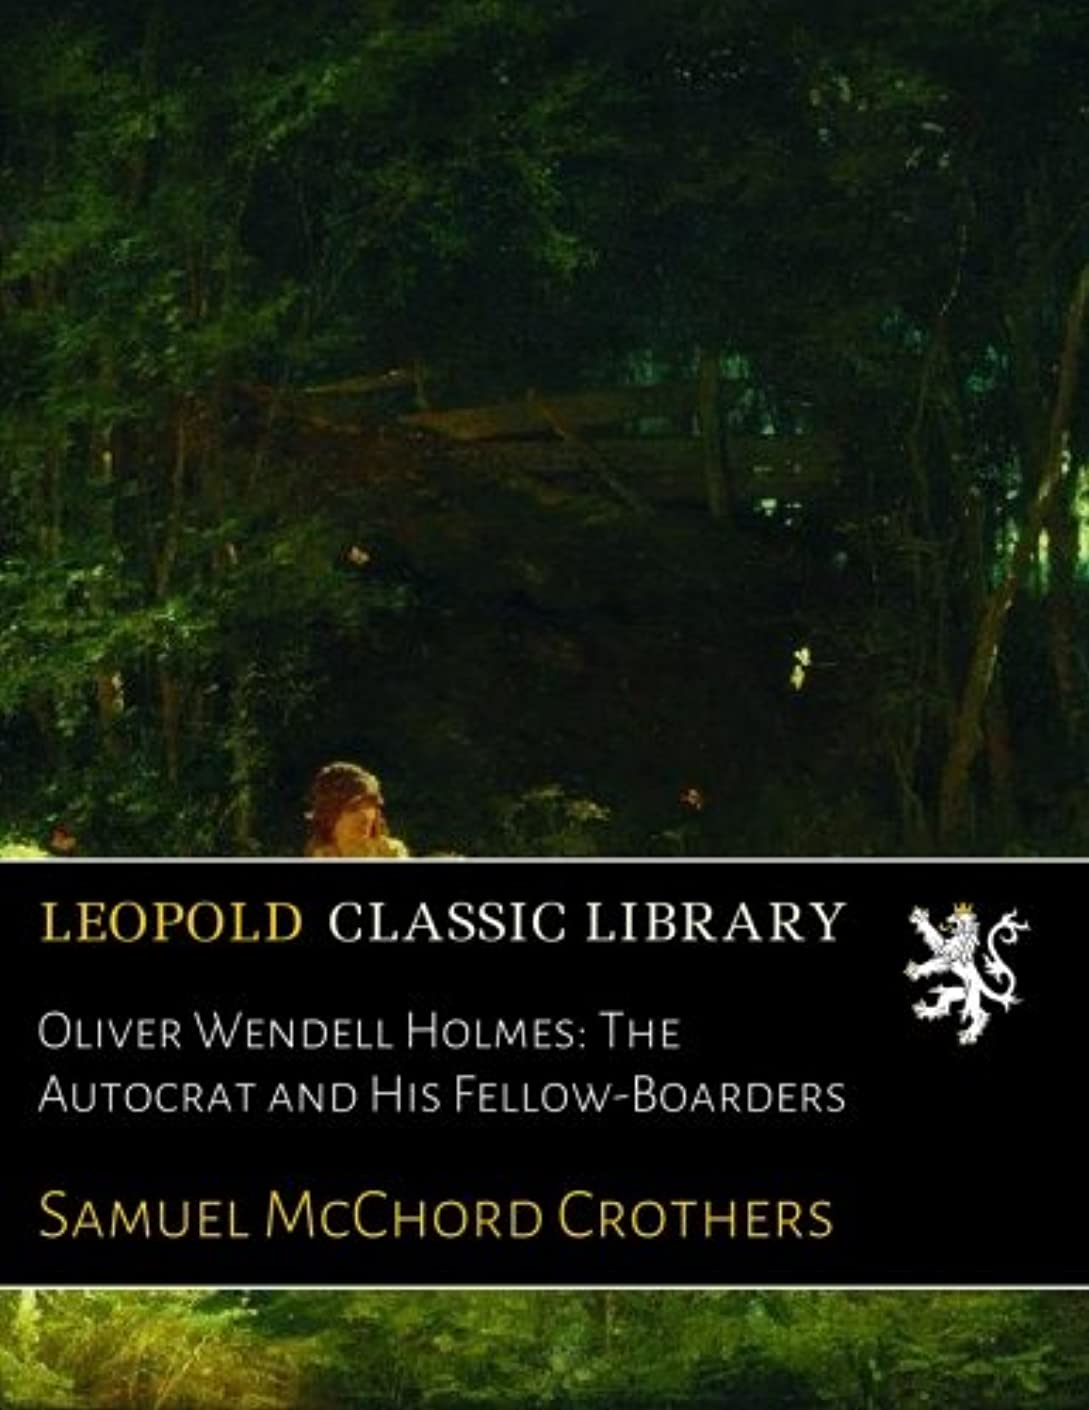 ドライブ手のひら作曲家Oliver Wendell Holmes: The Autocrat and His Fellow-Boarders